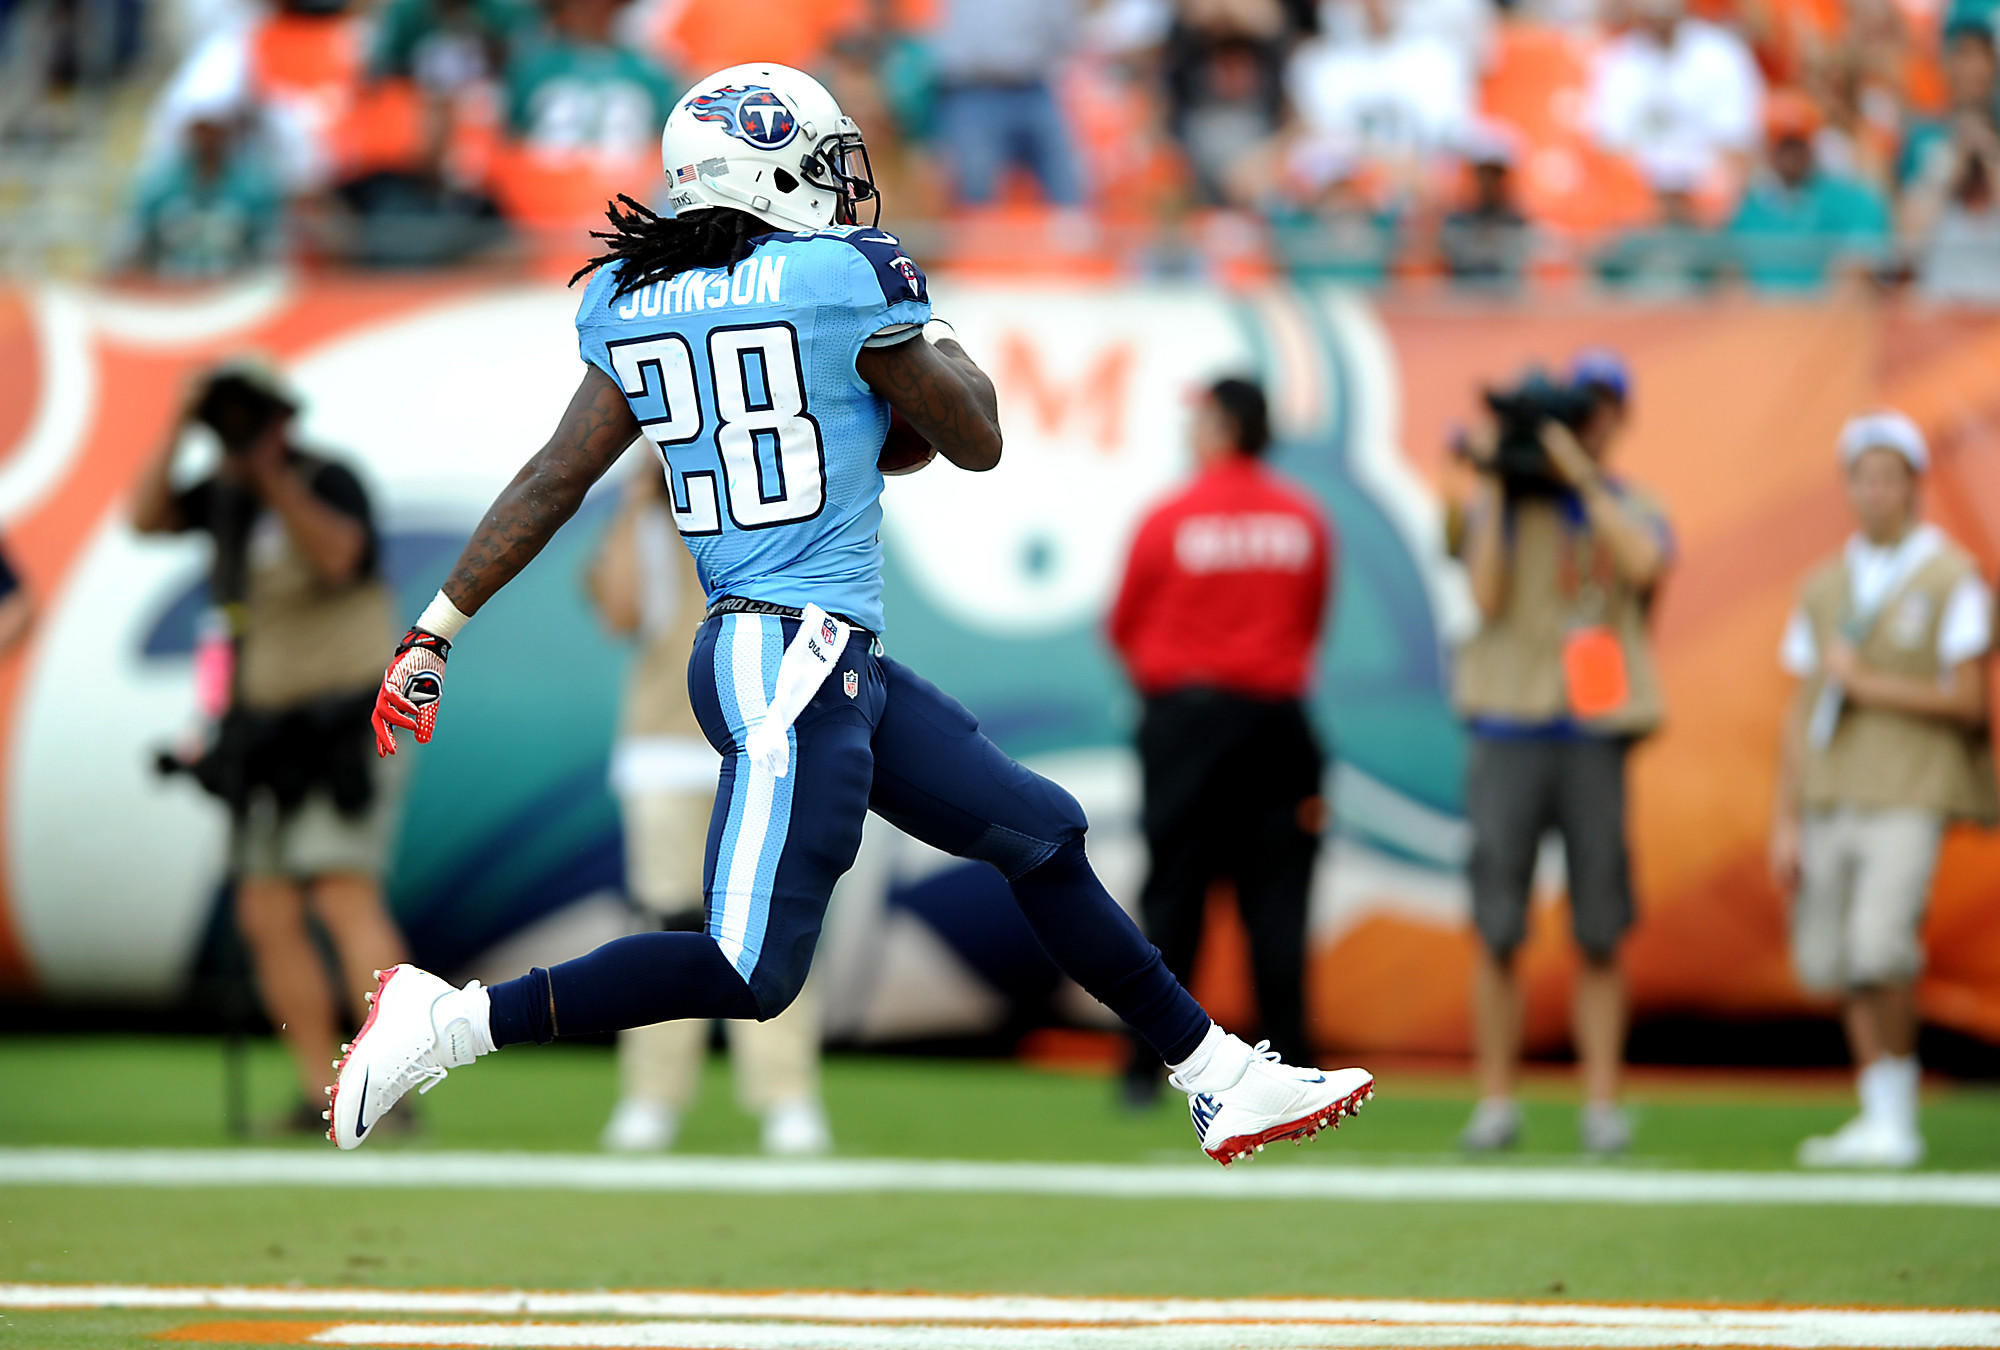 Titans running back Chris Johnson scores a touchdown against the Dolphins in 2012.